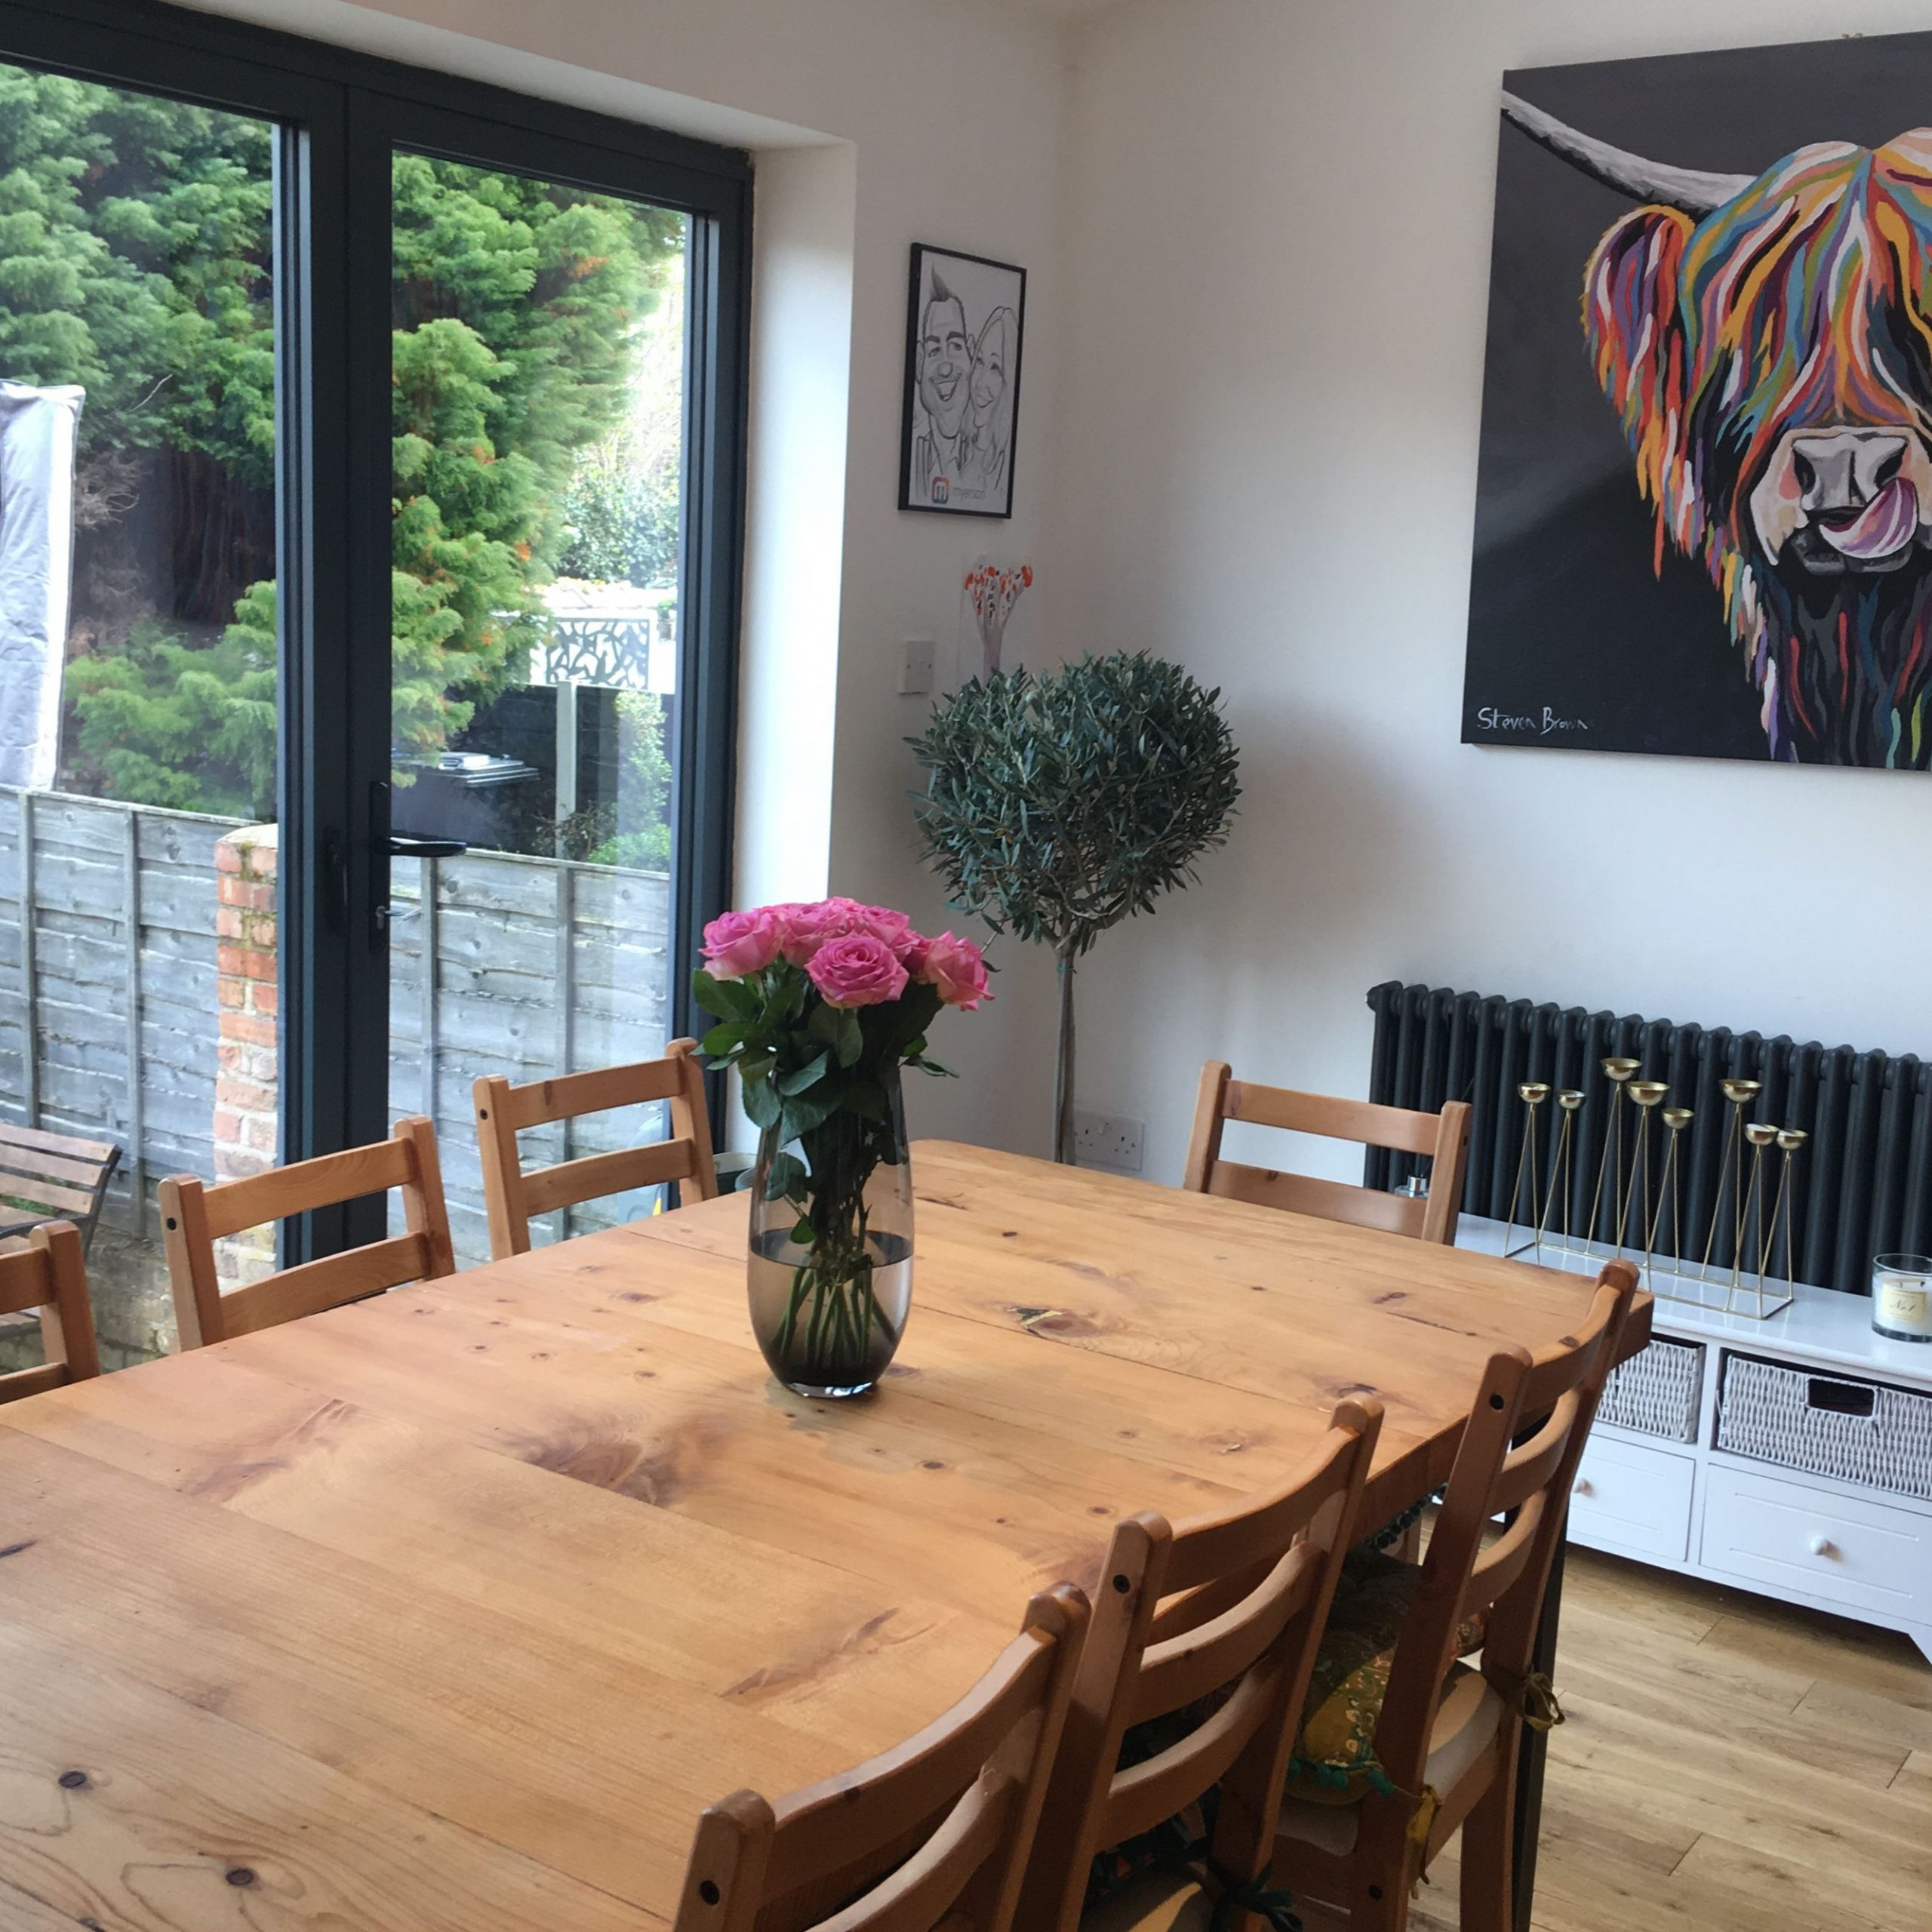 Heather Mccoo Canvas, Handmade Wooden Dining Table, Olive Throughout Most Up To Date Steven 39'' Dining Tables (View 14 of 15)